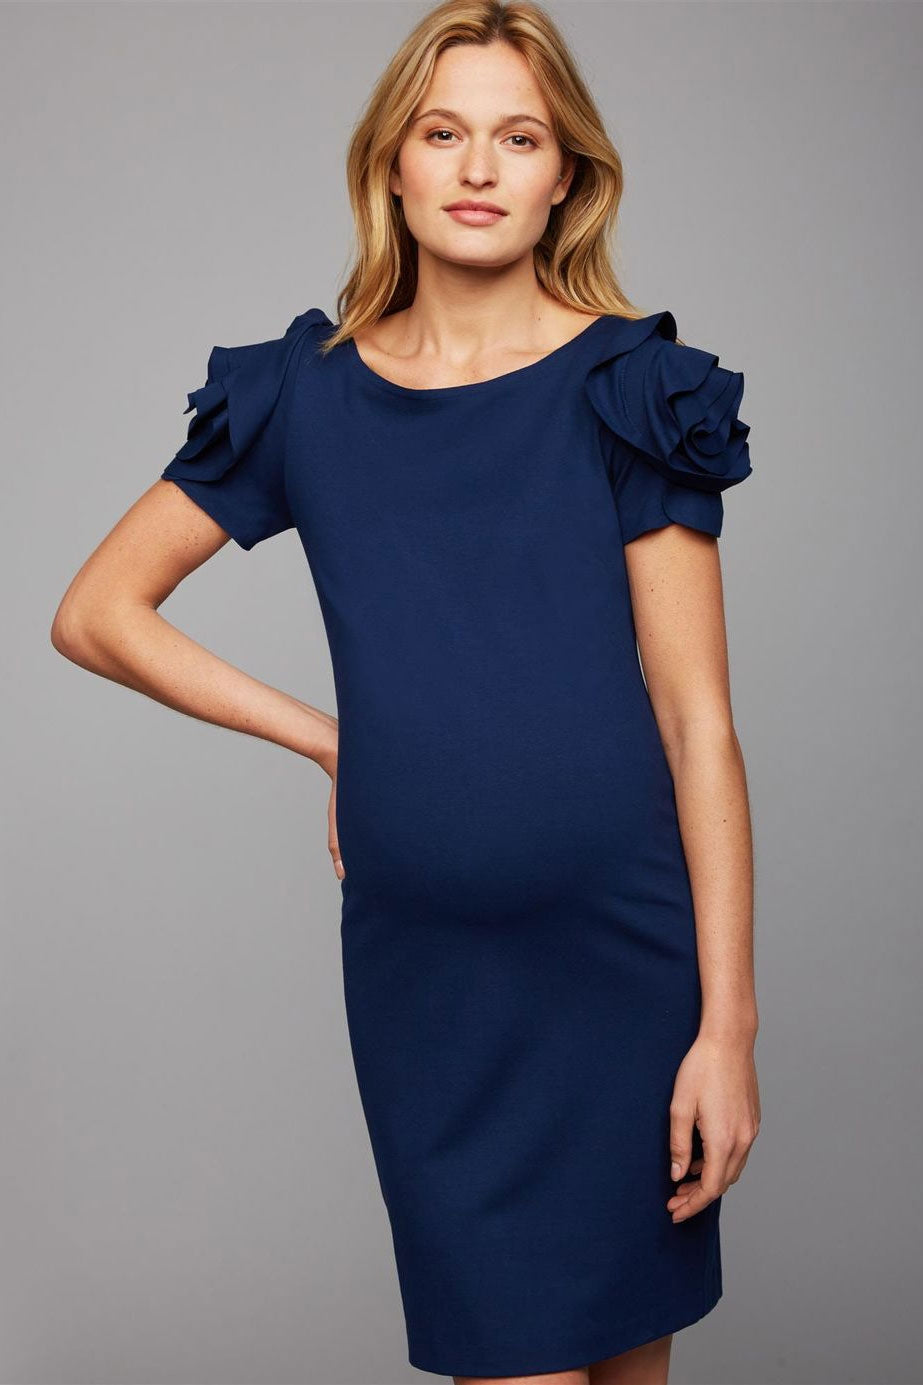 Pietro Brunelli Milano Flower Sleeve Maternity Dress - Seven Women Maternity